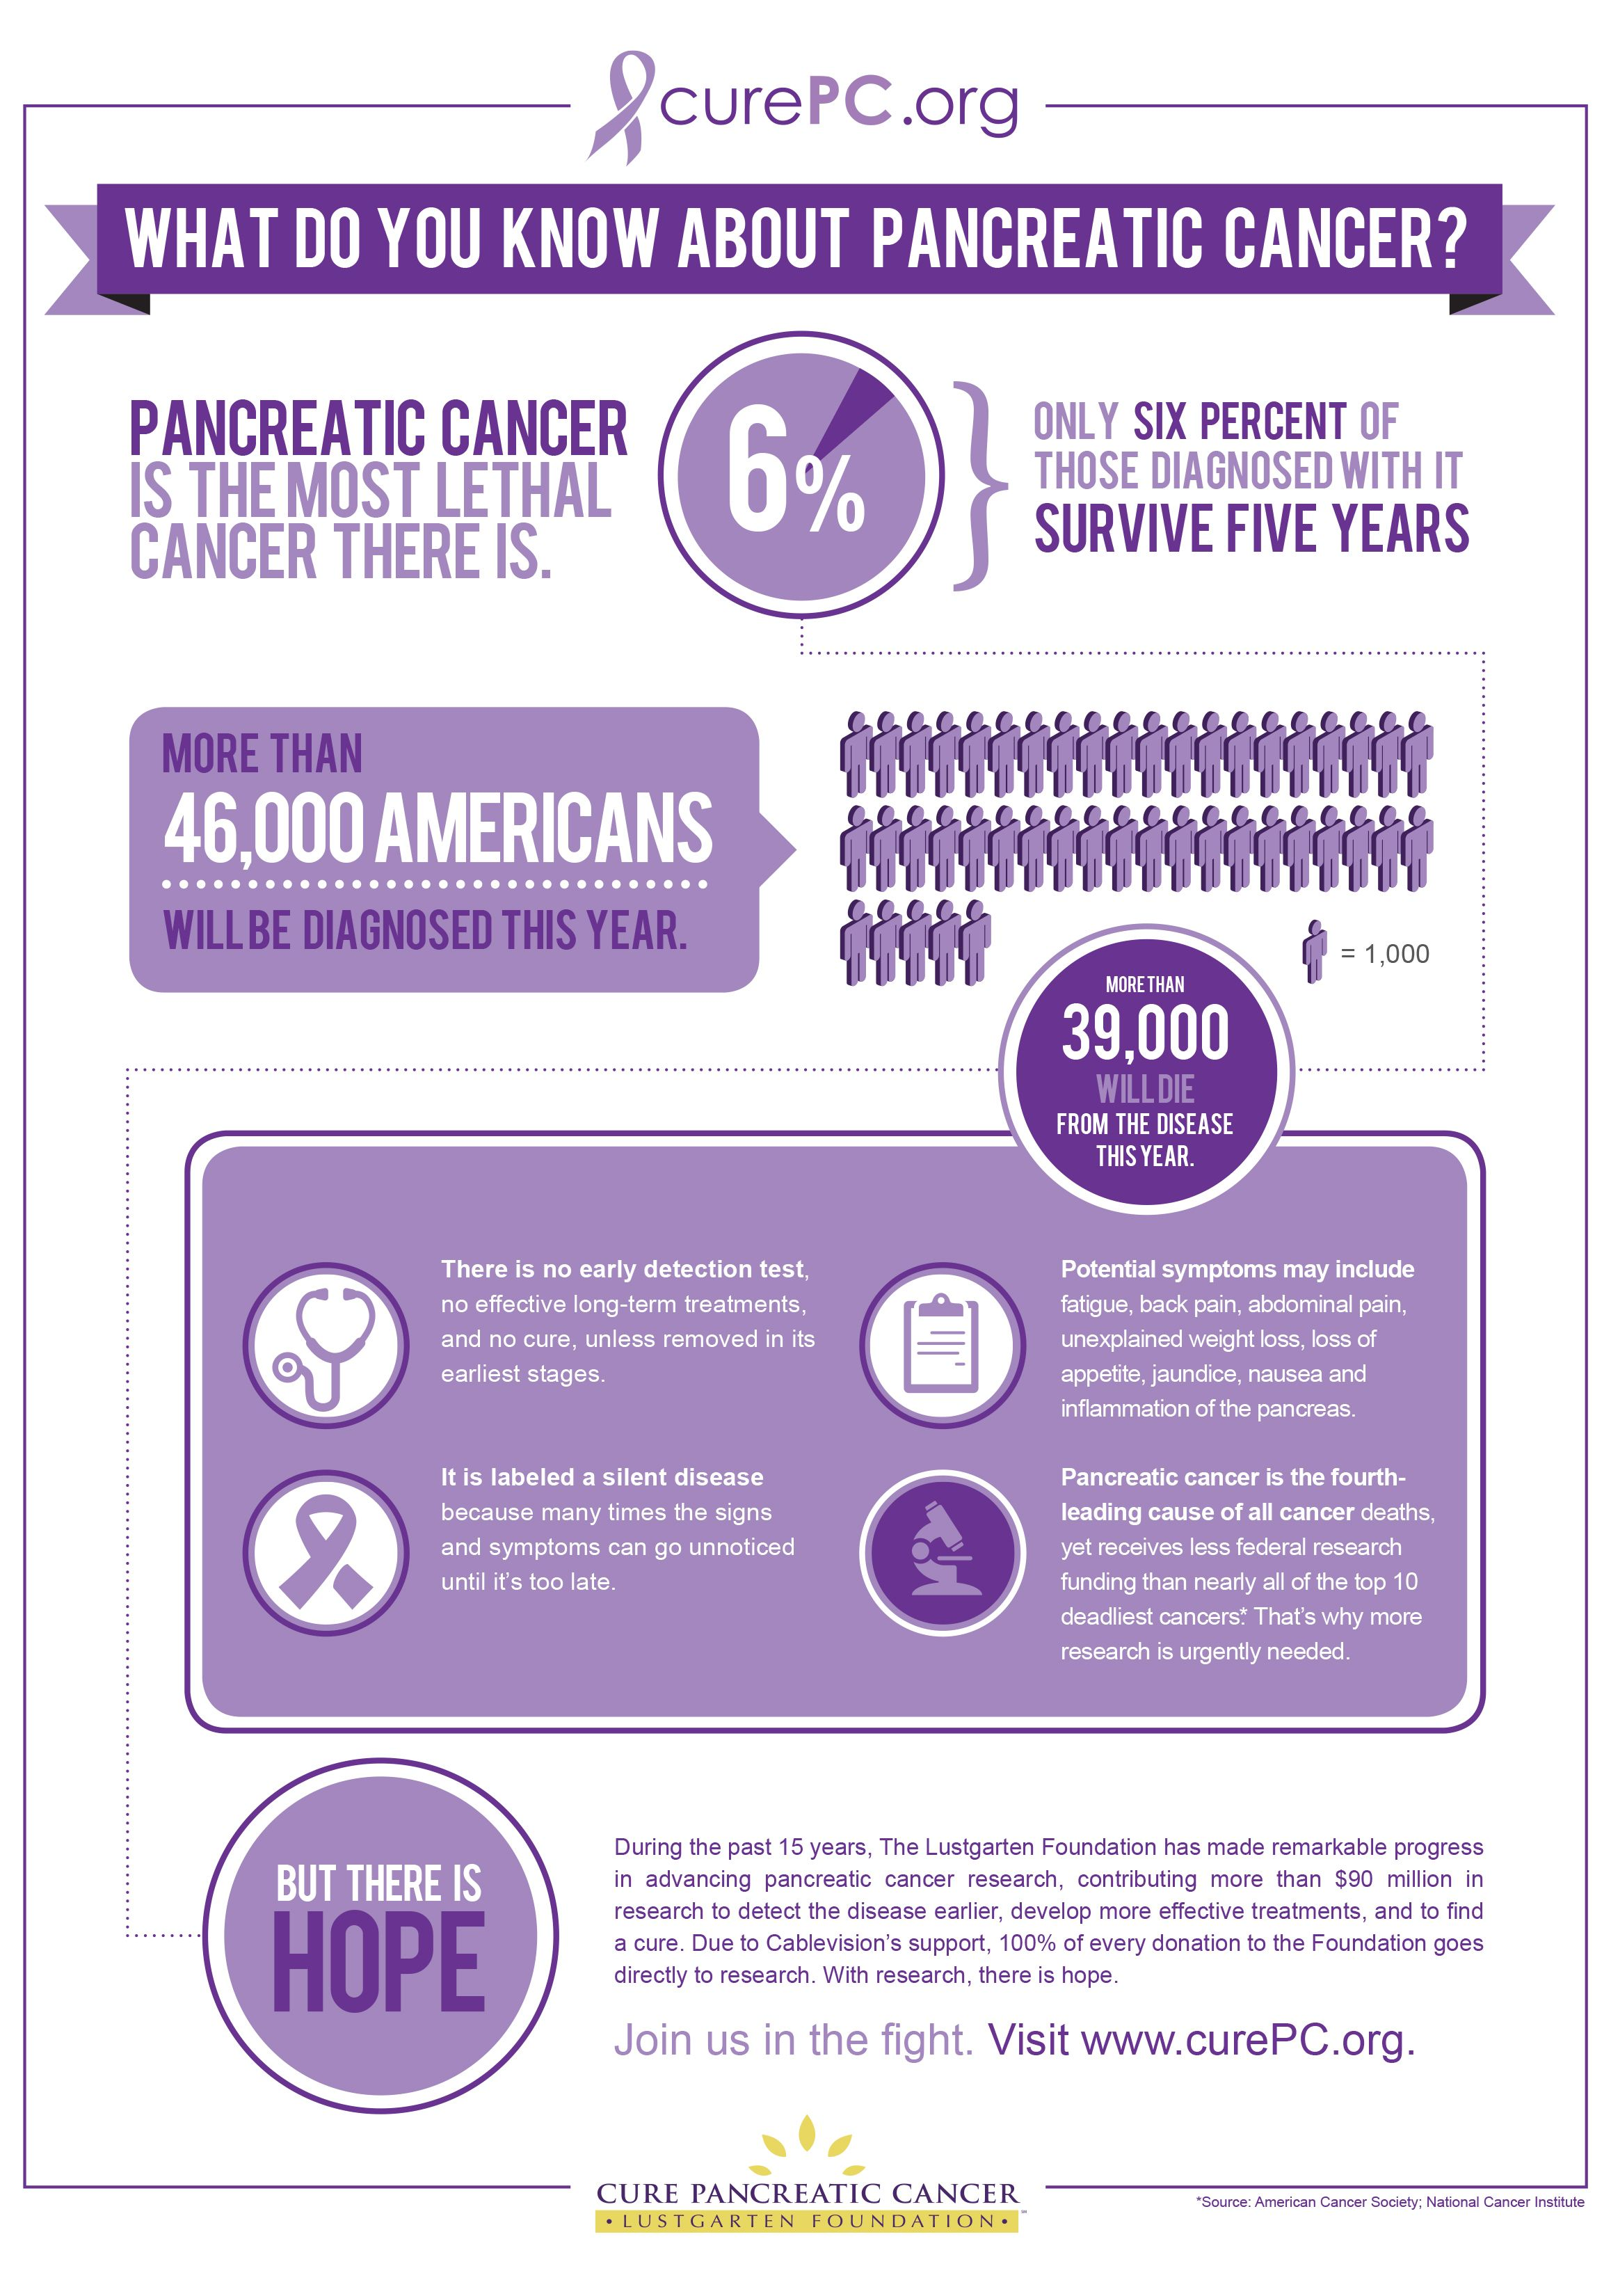 Cancer herbal treatment statistics - Advancing Scientific And Medical Research Related To The Diagnosis Treatment Cure And Prevention Of Pancreatic Cancer